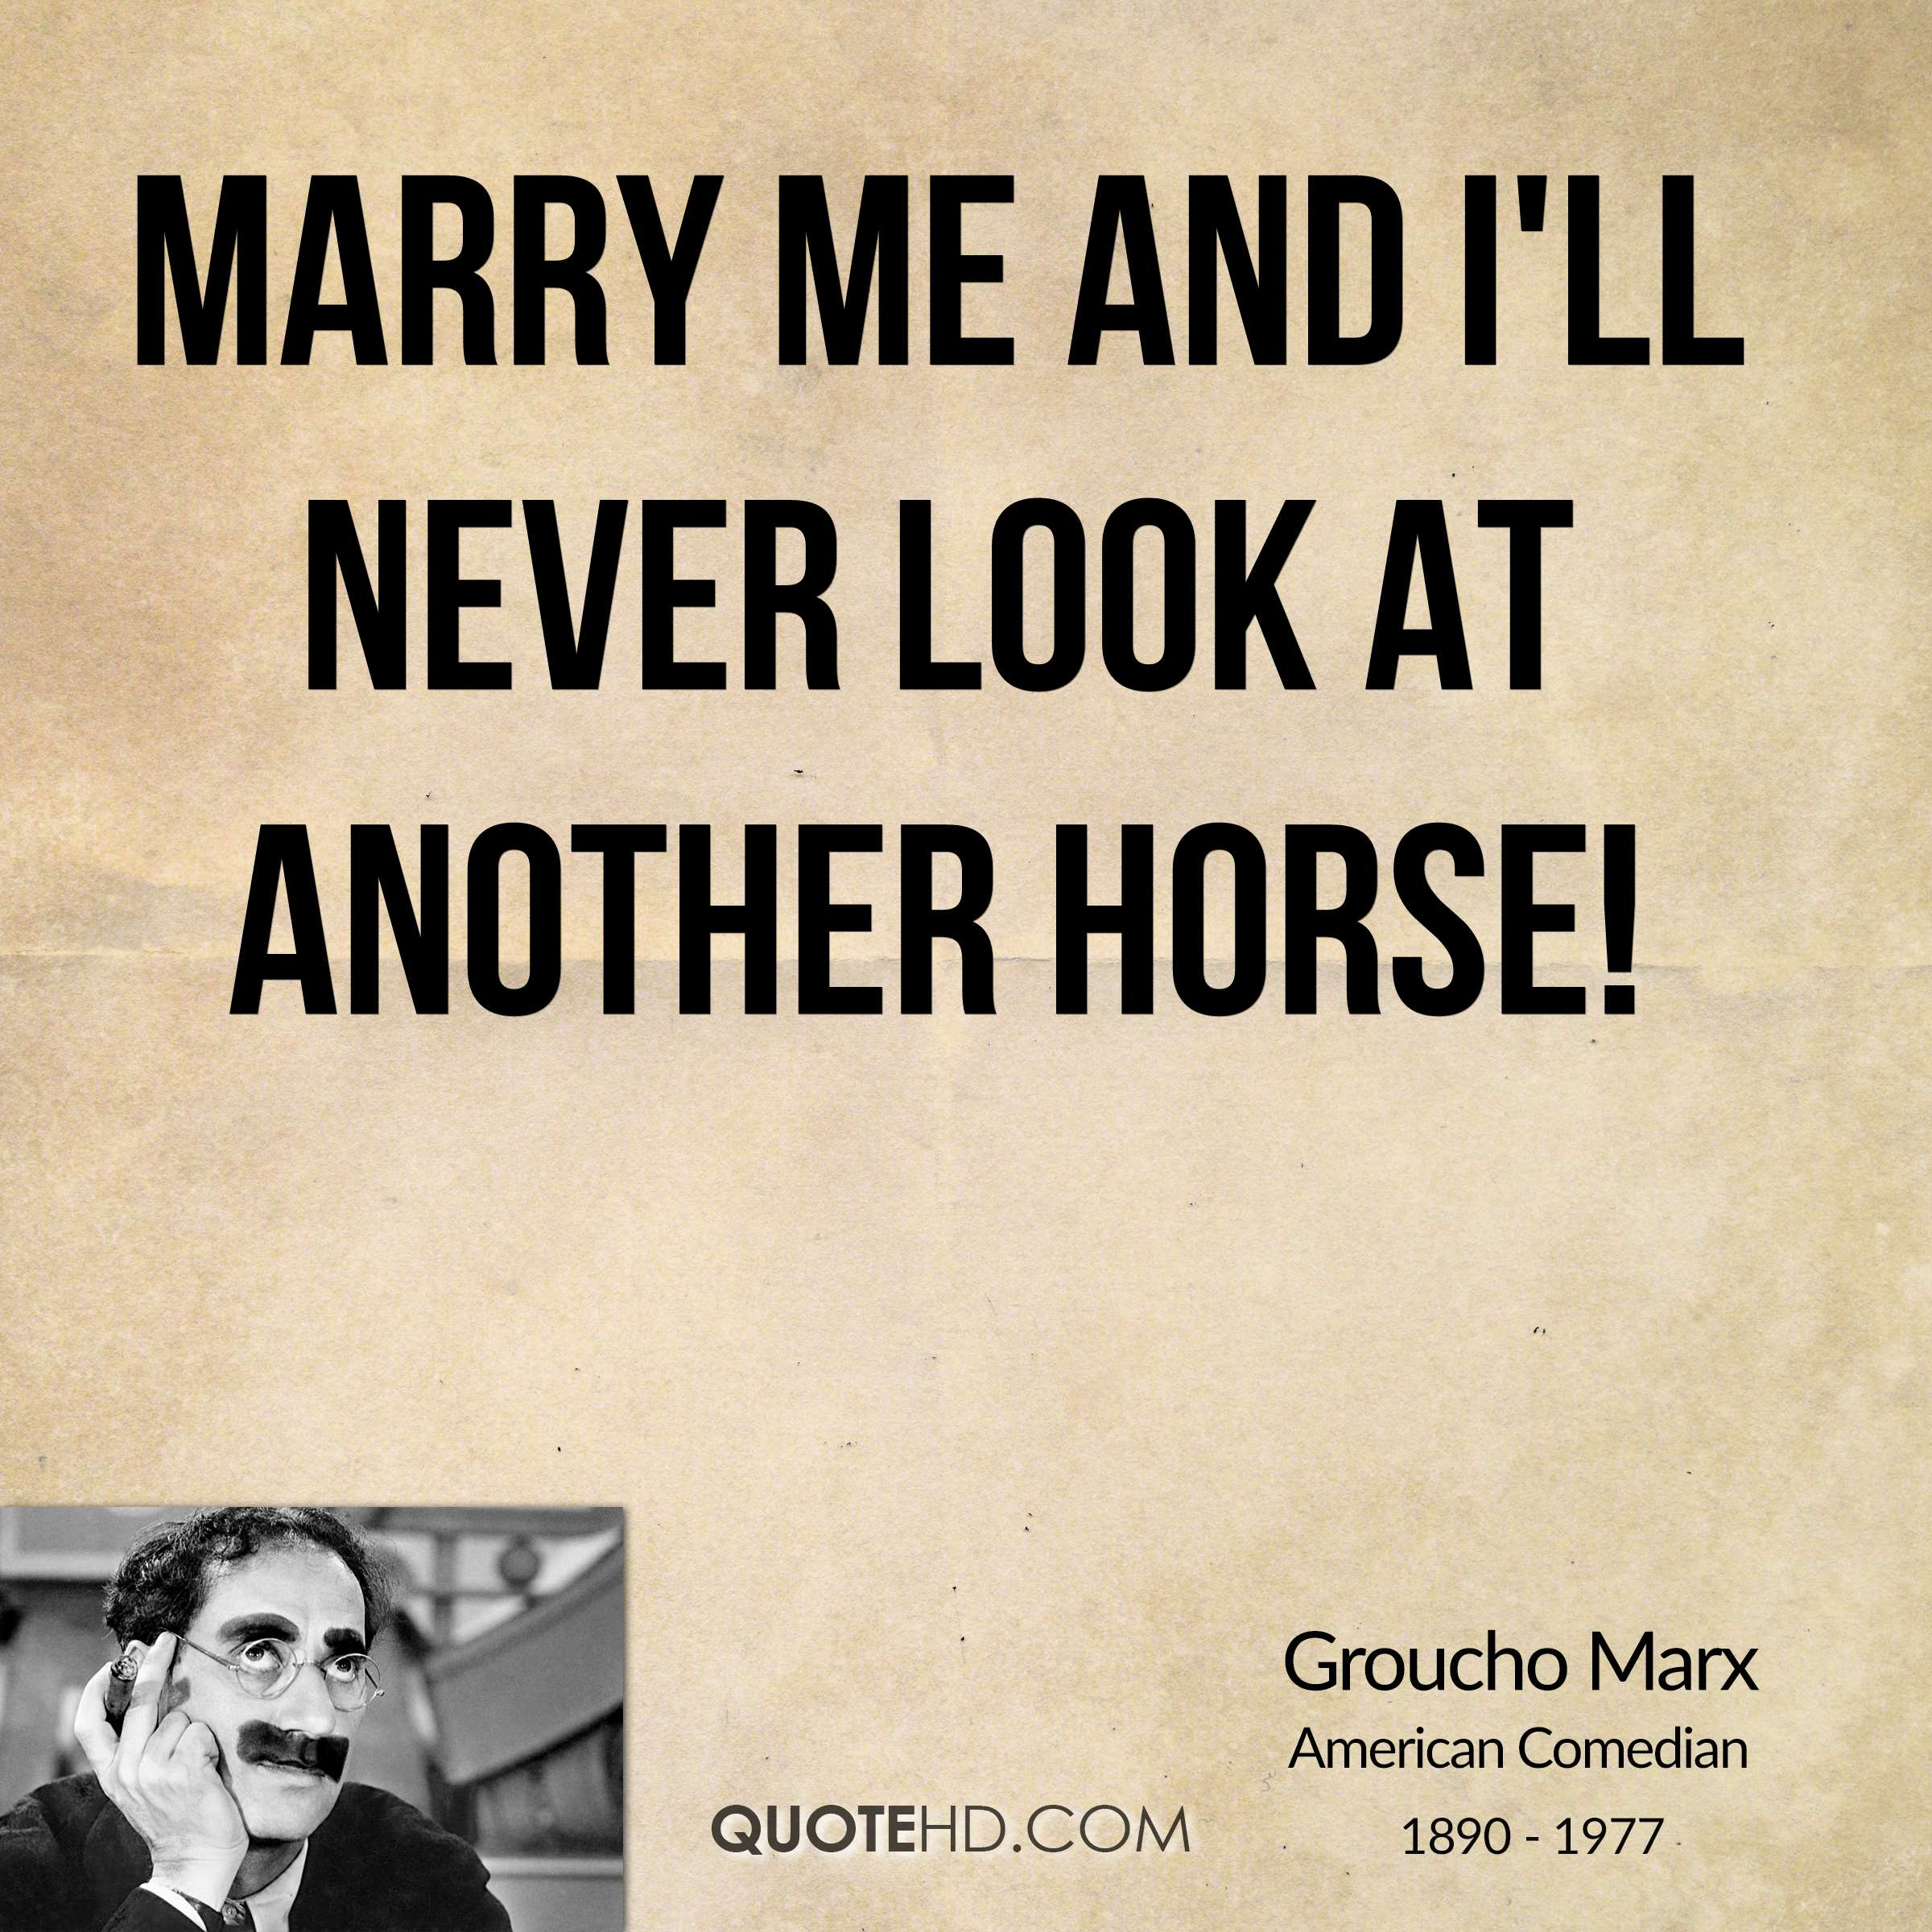 Marry me and I'll never look at another horse!